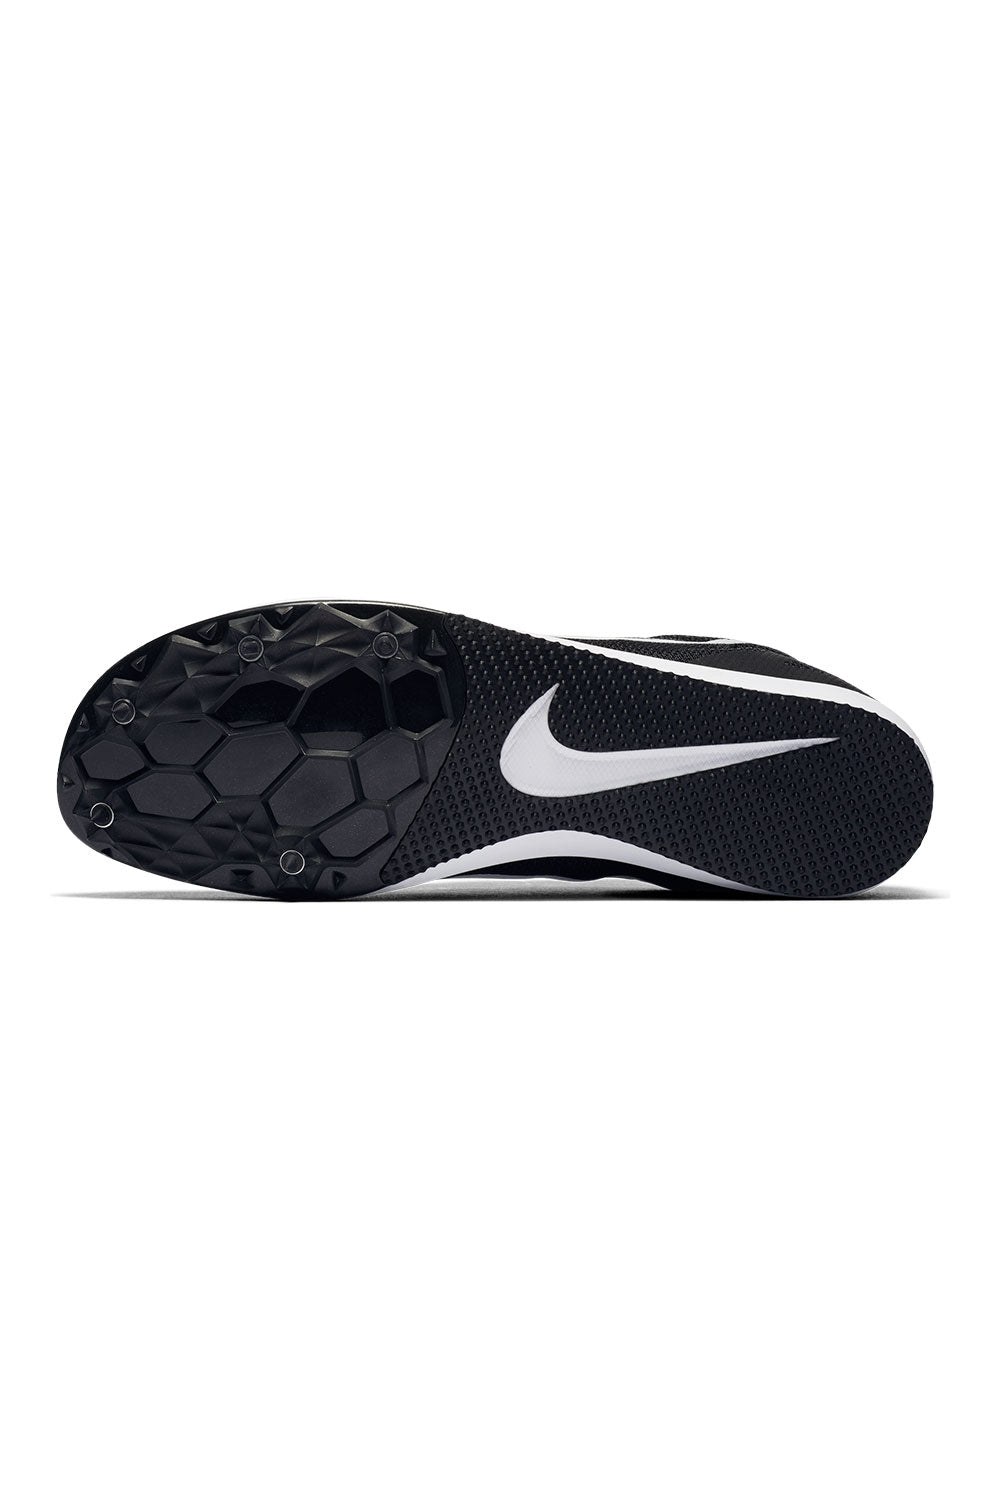 outlet store 81c8c 22a0e ... Mens Zoom Rival D 10. Nike